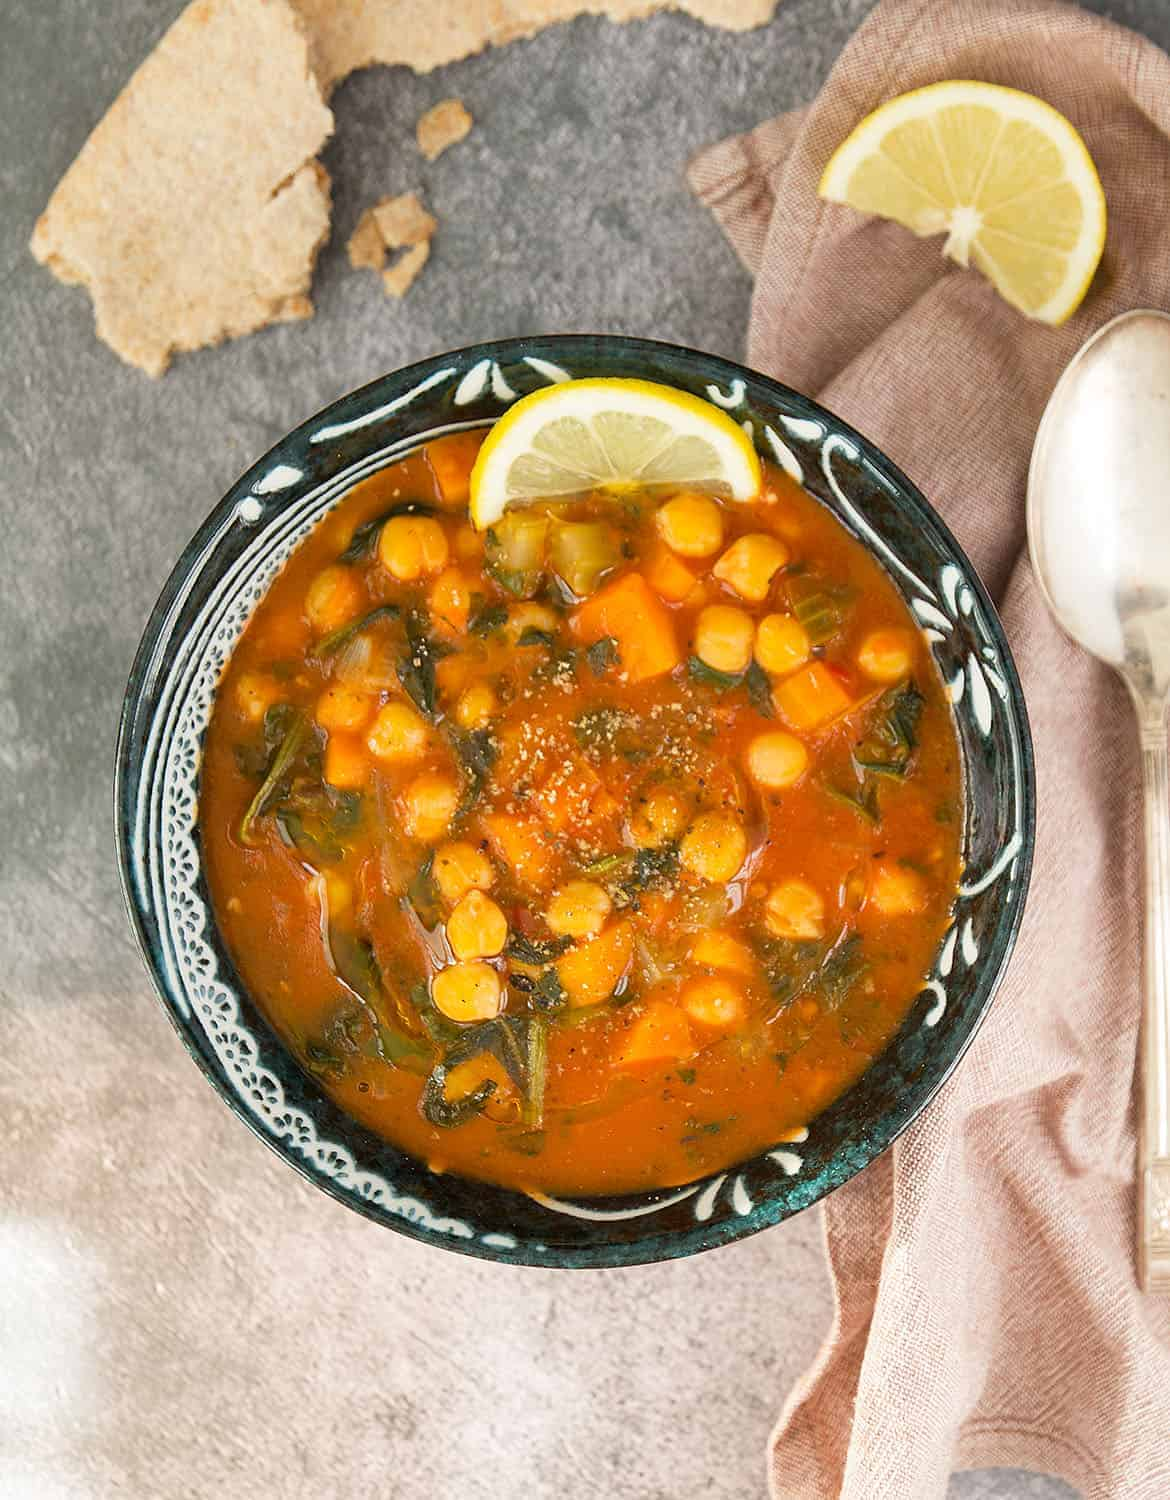 Top view of a black bowl of mediterranean chickpea soup with a slice of lemon over a grey background.